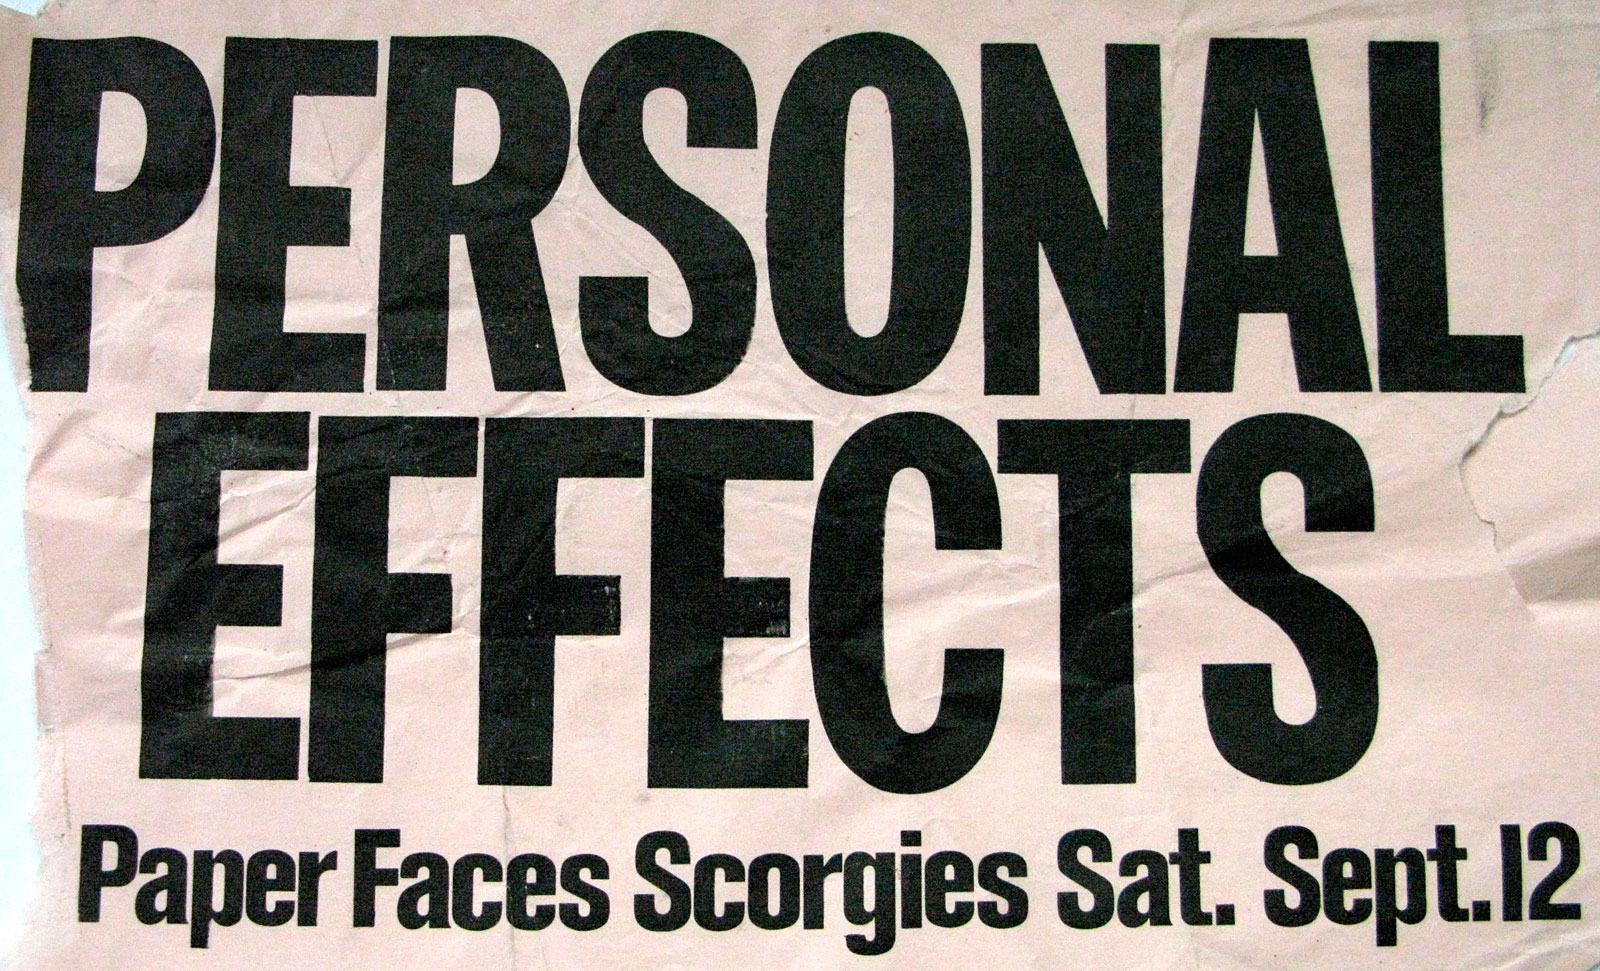 Poster for Personal Effects with Paper Faces at Scorgie's in Rochester, New York on Saturday 09.12.1981